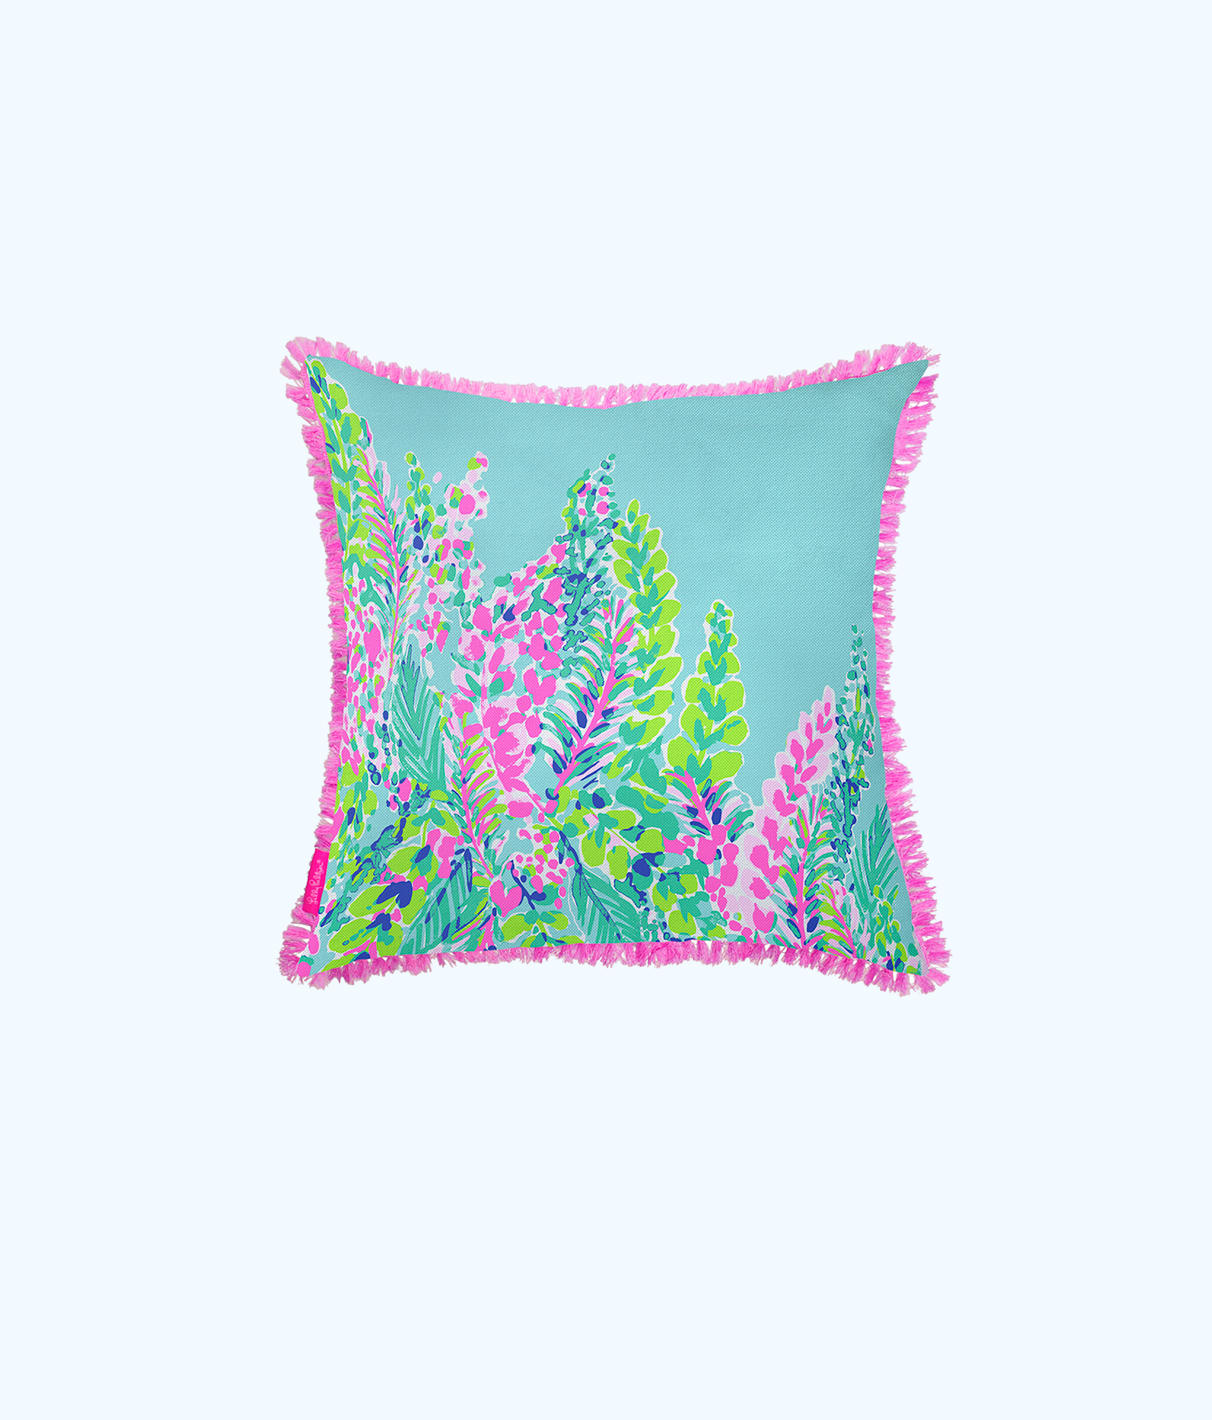 Lilly Pulitzer Lilly Pulitzer Large Pillow